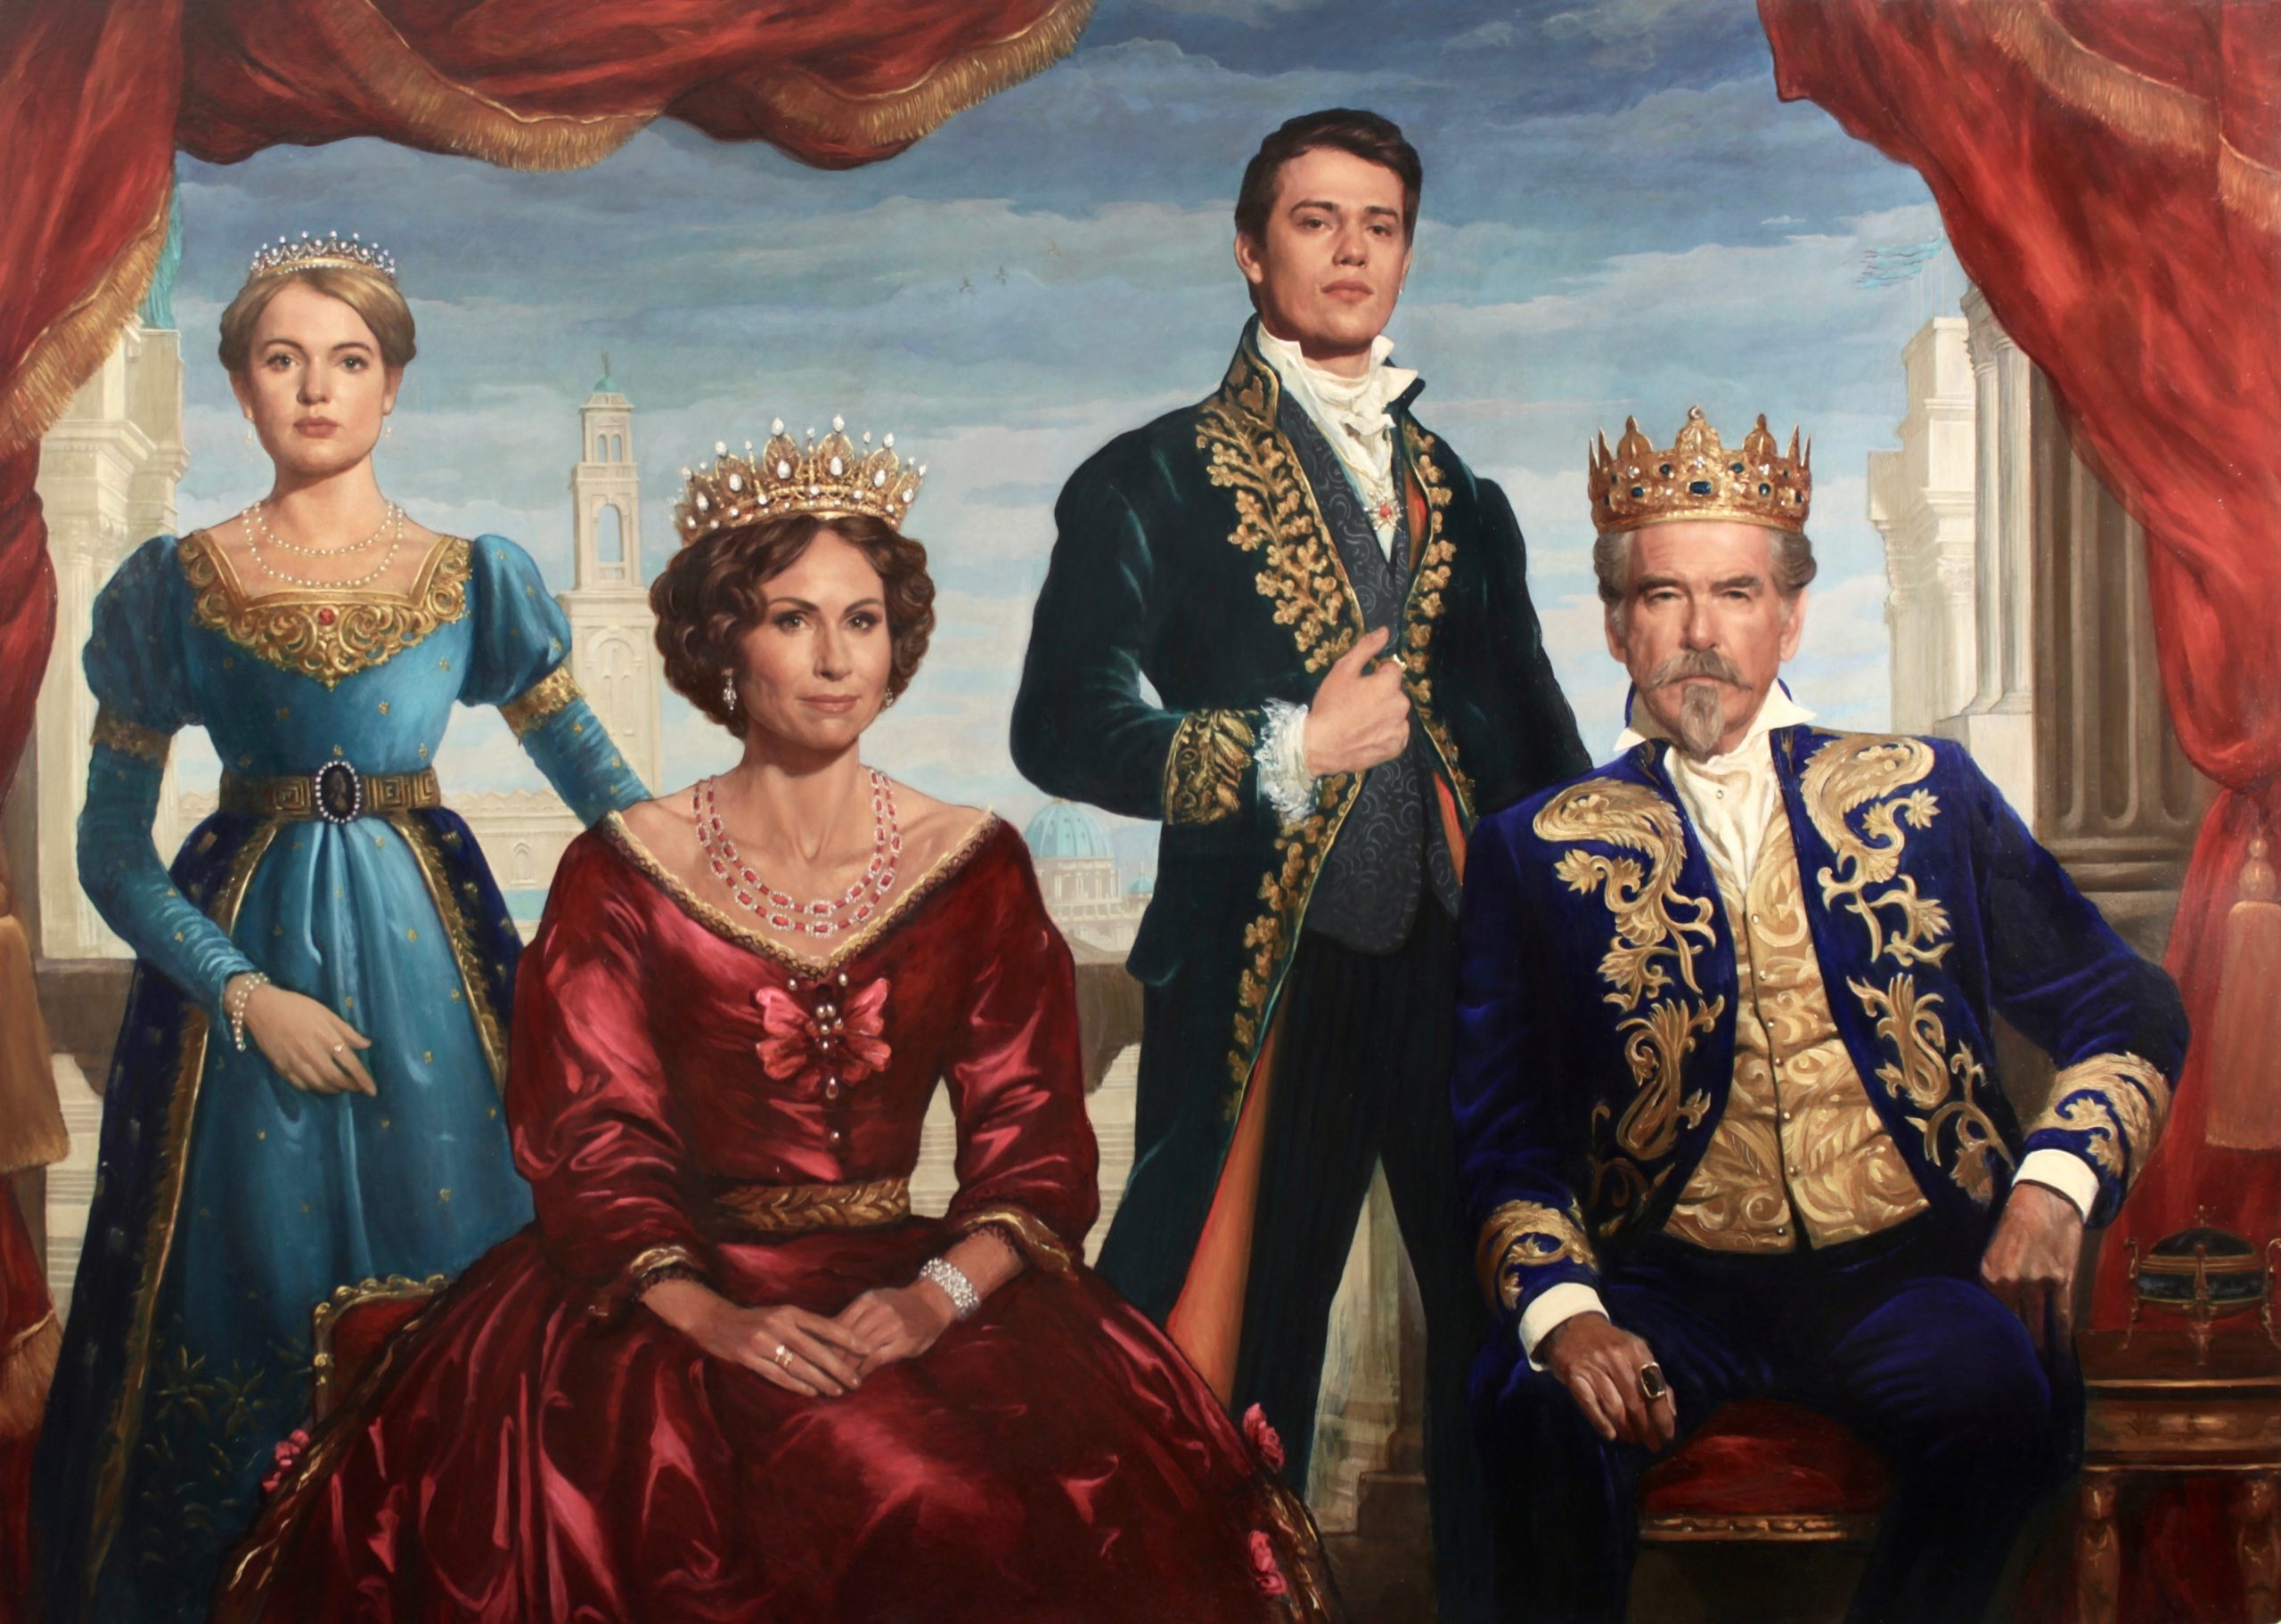 Oil portrait of the royal family by Desmond Mac Mahon for the film Cinderella